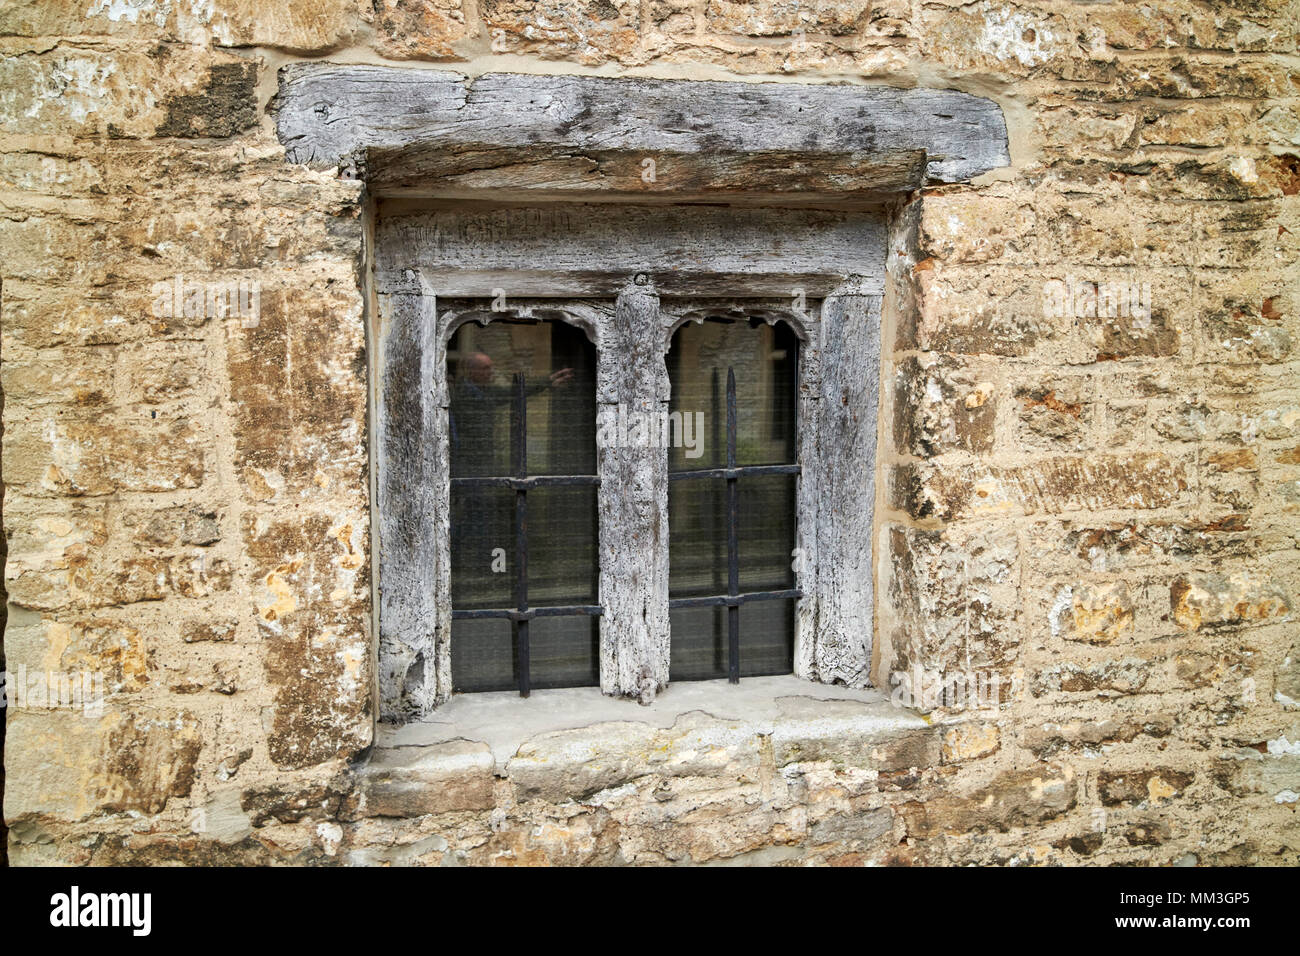 old historic small wood framed window in brick building Castle Combe village wiltshire england uk - Stock Image